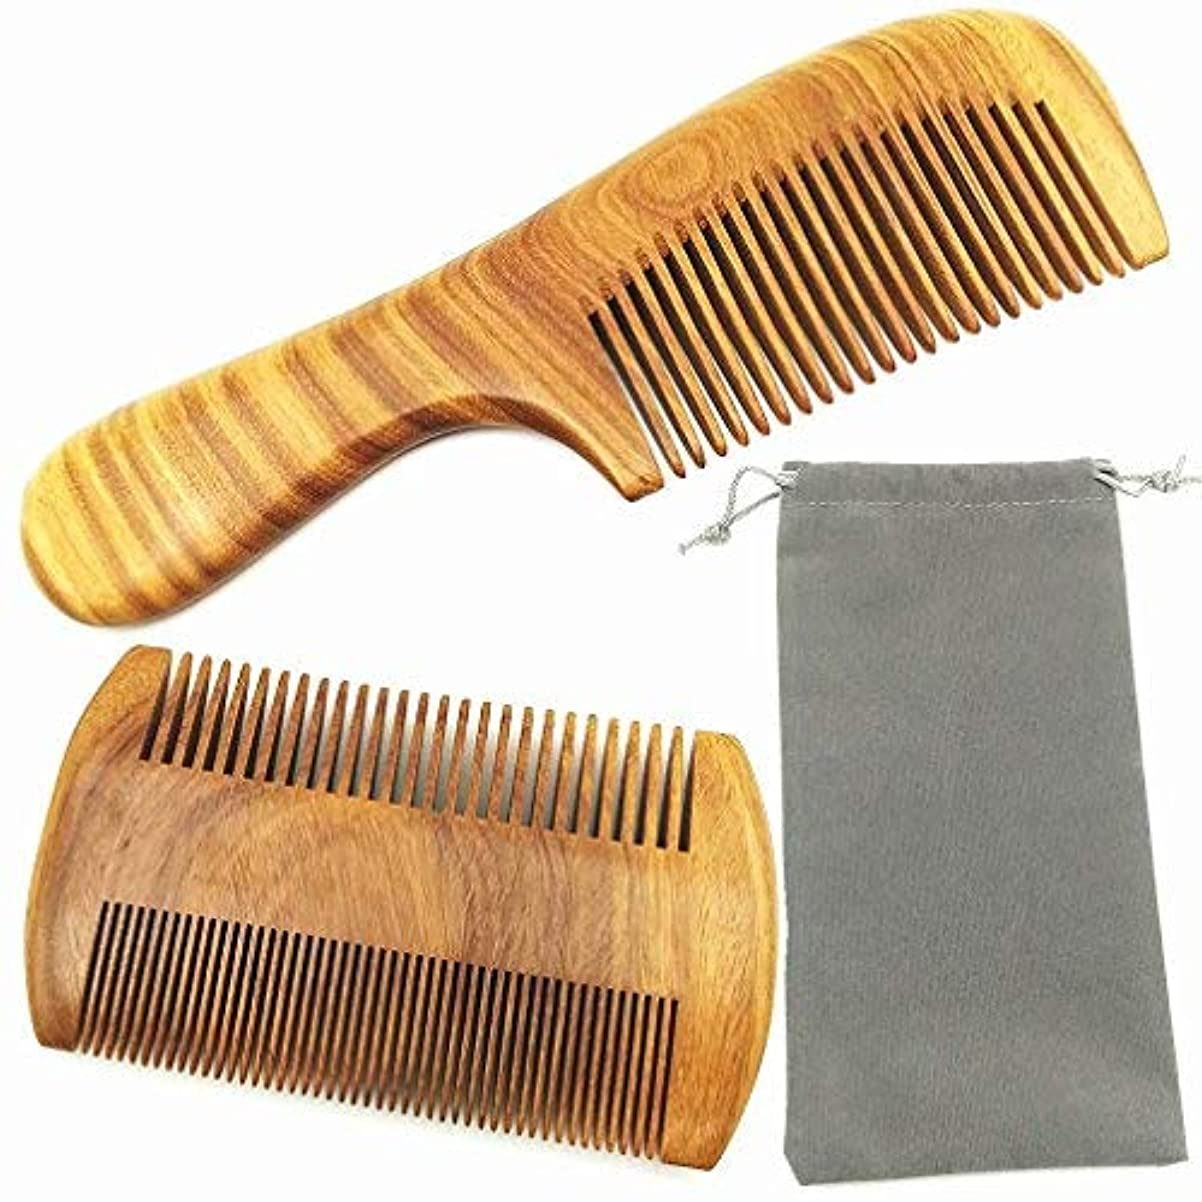 先生告白砂漠Hair Combs ? Handmade Natural Aroma Green Sandalwood Wooden Comb Set - No Static Fine Sides & Wide Tooth Hair...